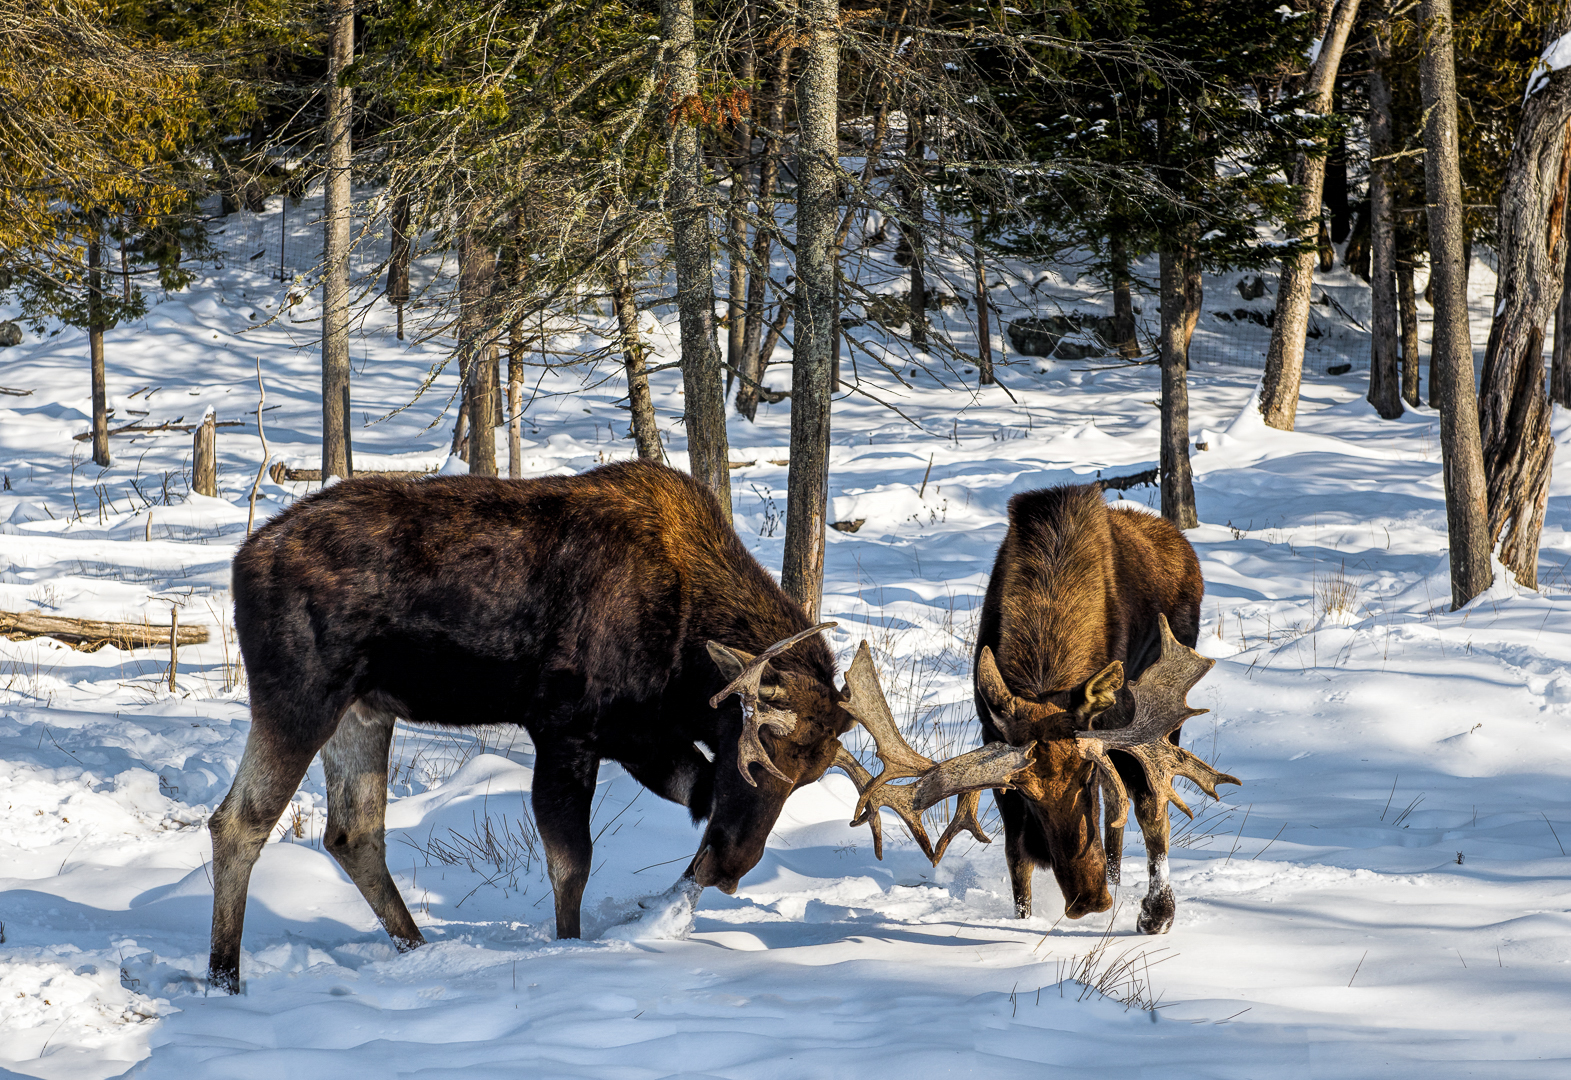 Bull Moose - Battling for Supremacy